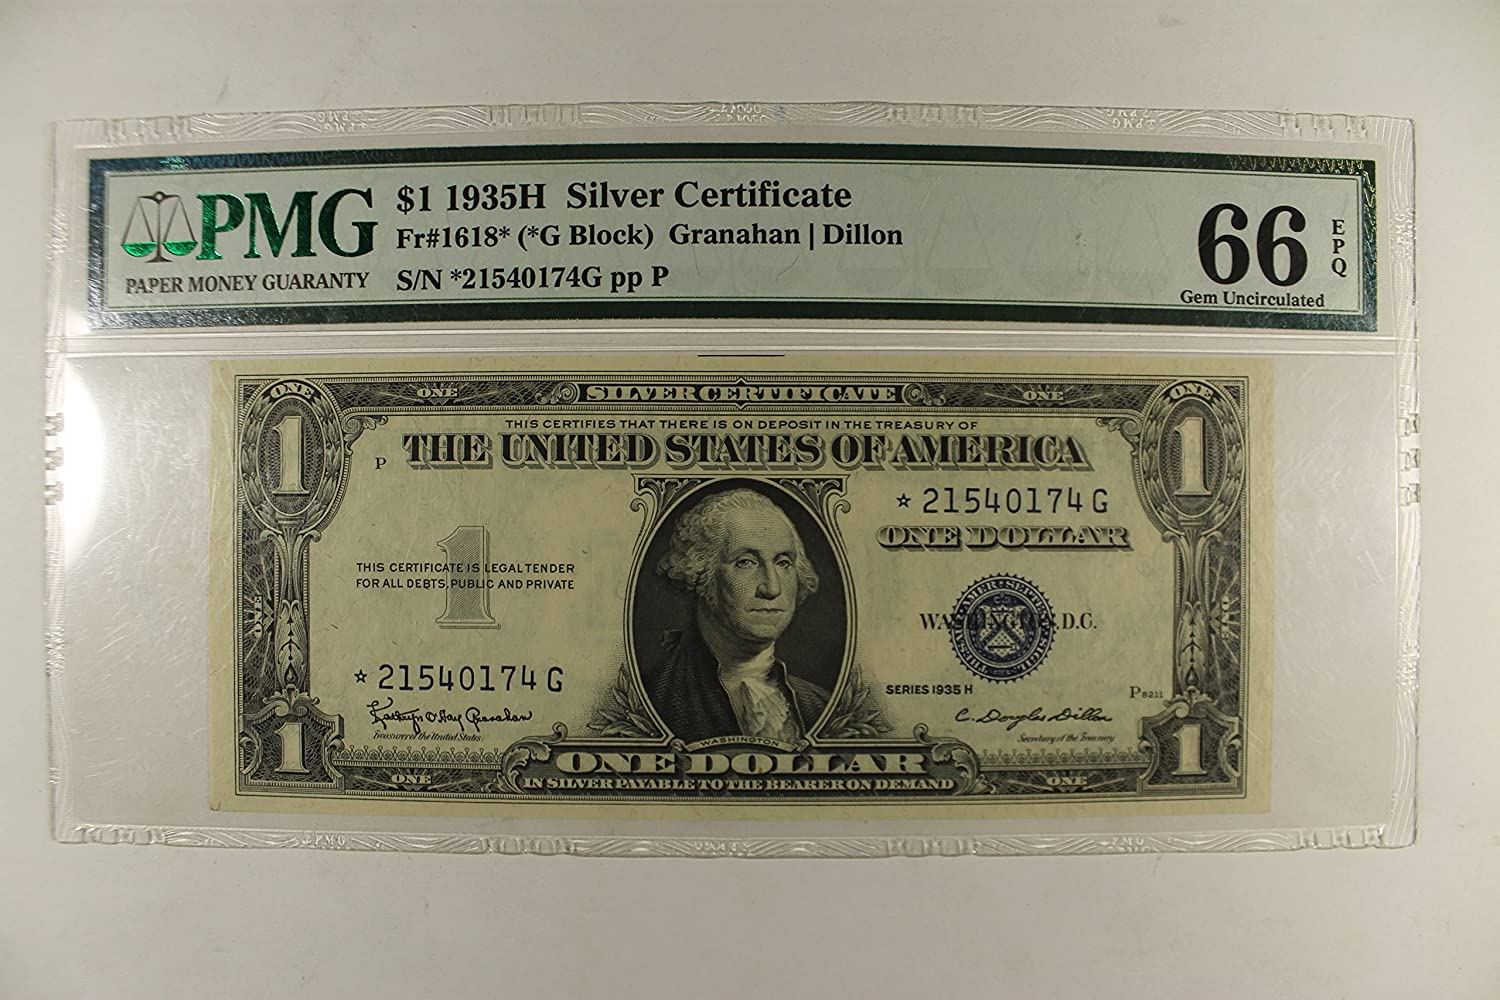 1935 H Silver Certificate 1 Pmg Gem Uncirculated 66 At Amazons